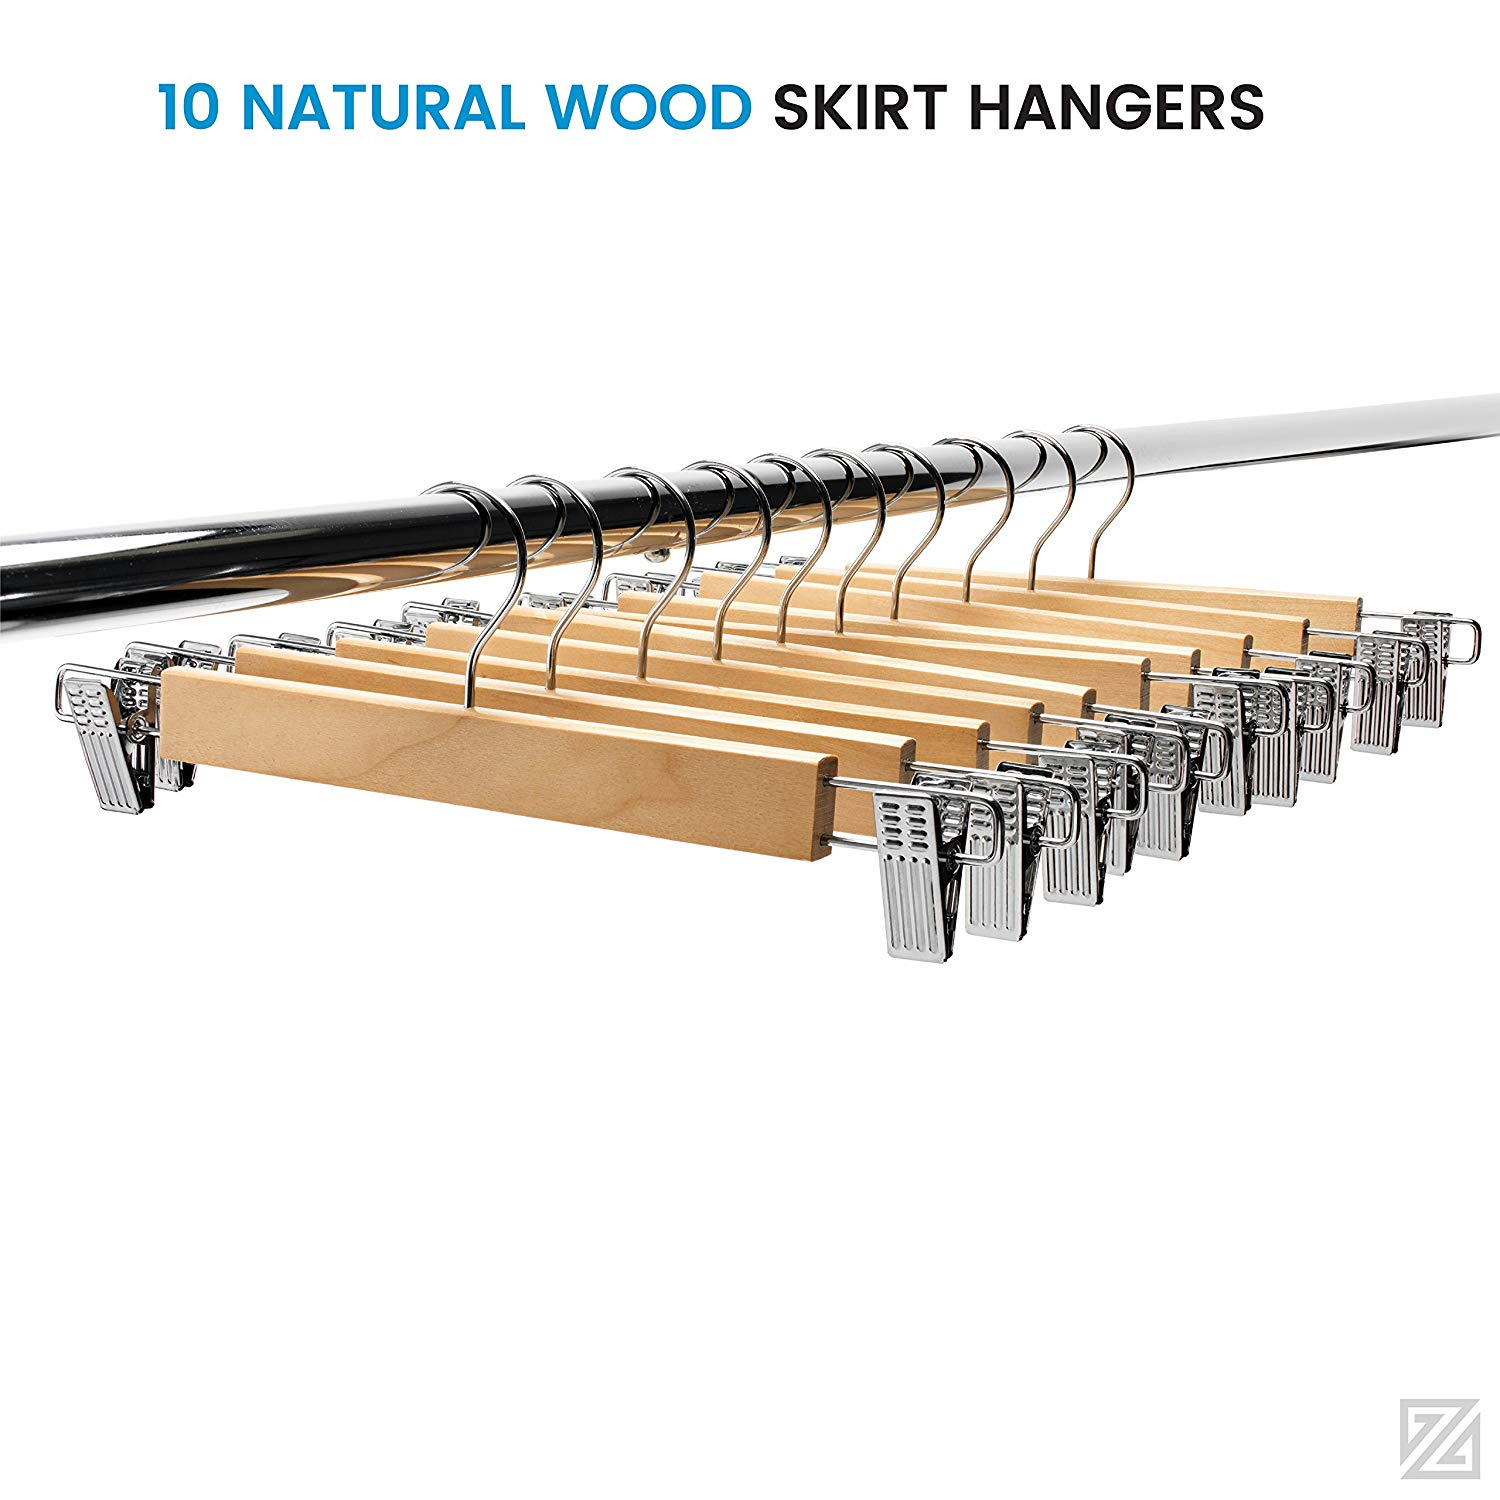 Zober Wood Skirt Hangers 13 X 4 Inches, Adjustable Clips With 360 Chrome Swivel Hook Non-Slip Trouser Hanger Natural Finish Lotus Wood Pants hangers, 360 Degree Swivel Hook Set of 10 Natural Finish